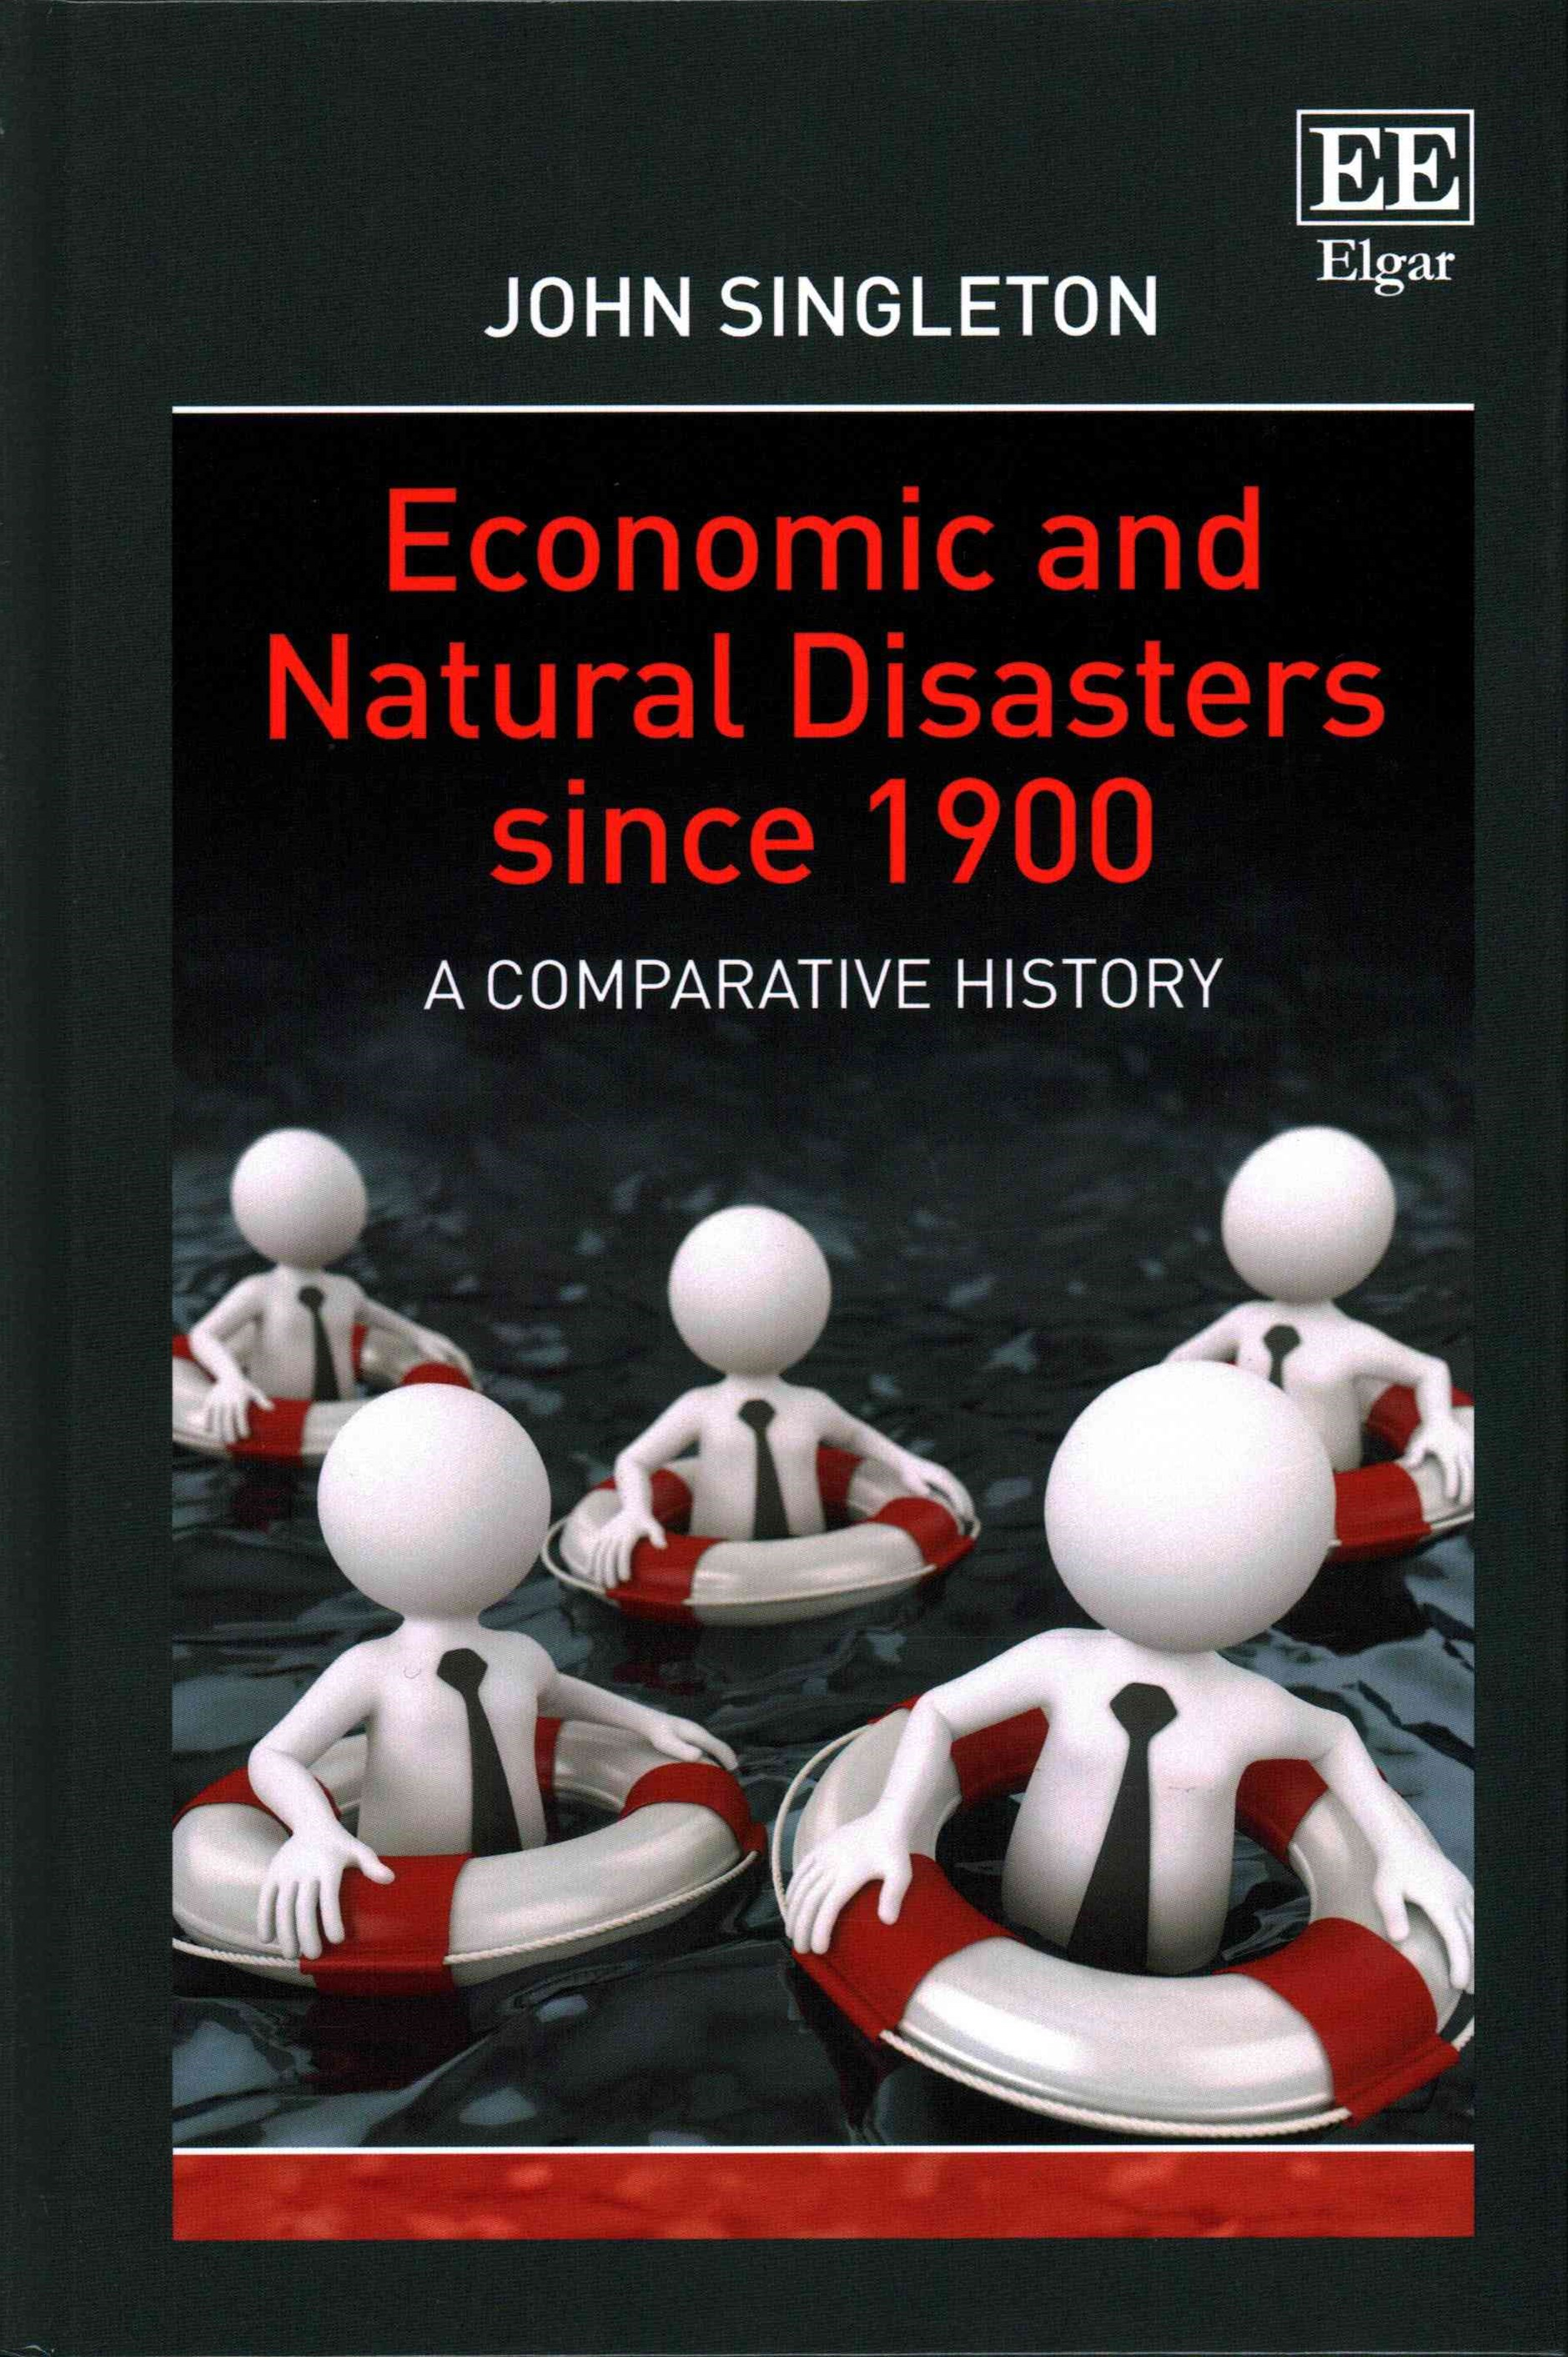 Economic and Natural Disasters Since 1900